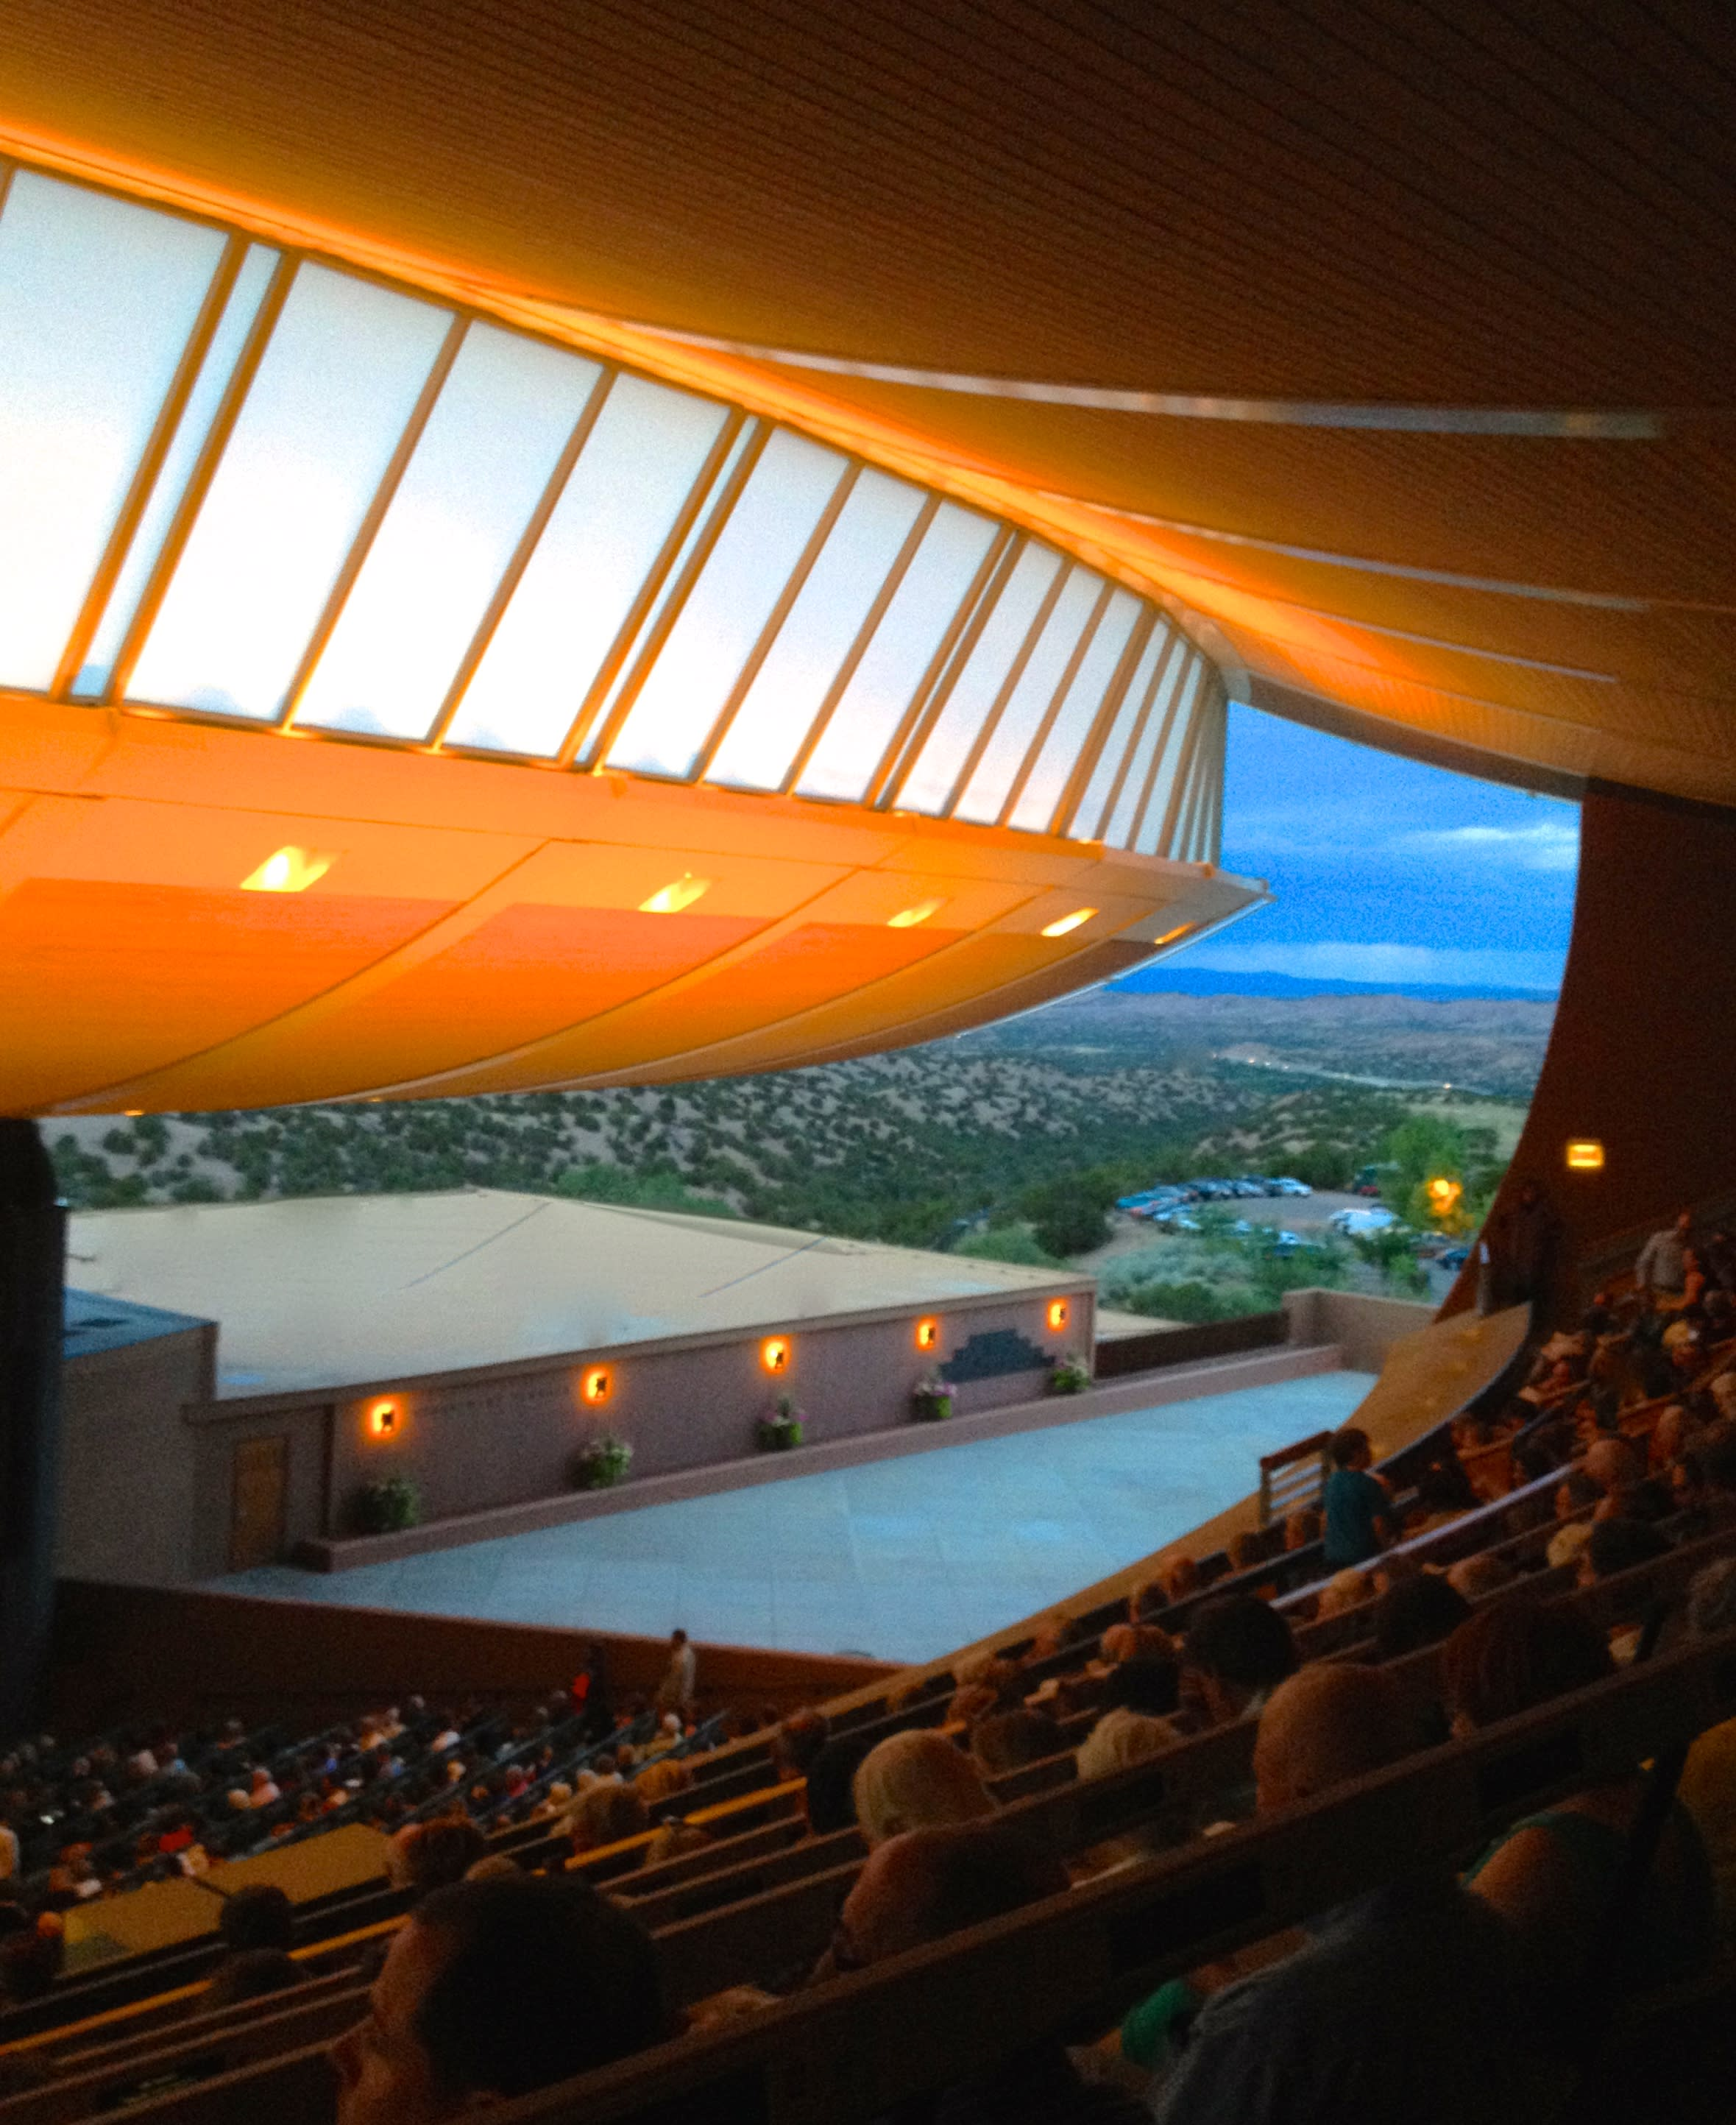 The Santa Fe Opera: The song of summer starts here!